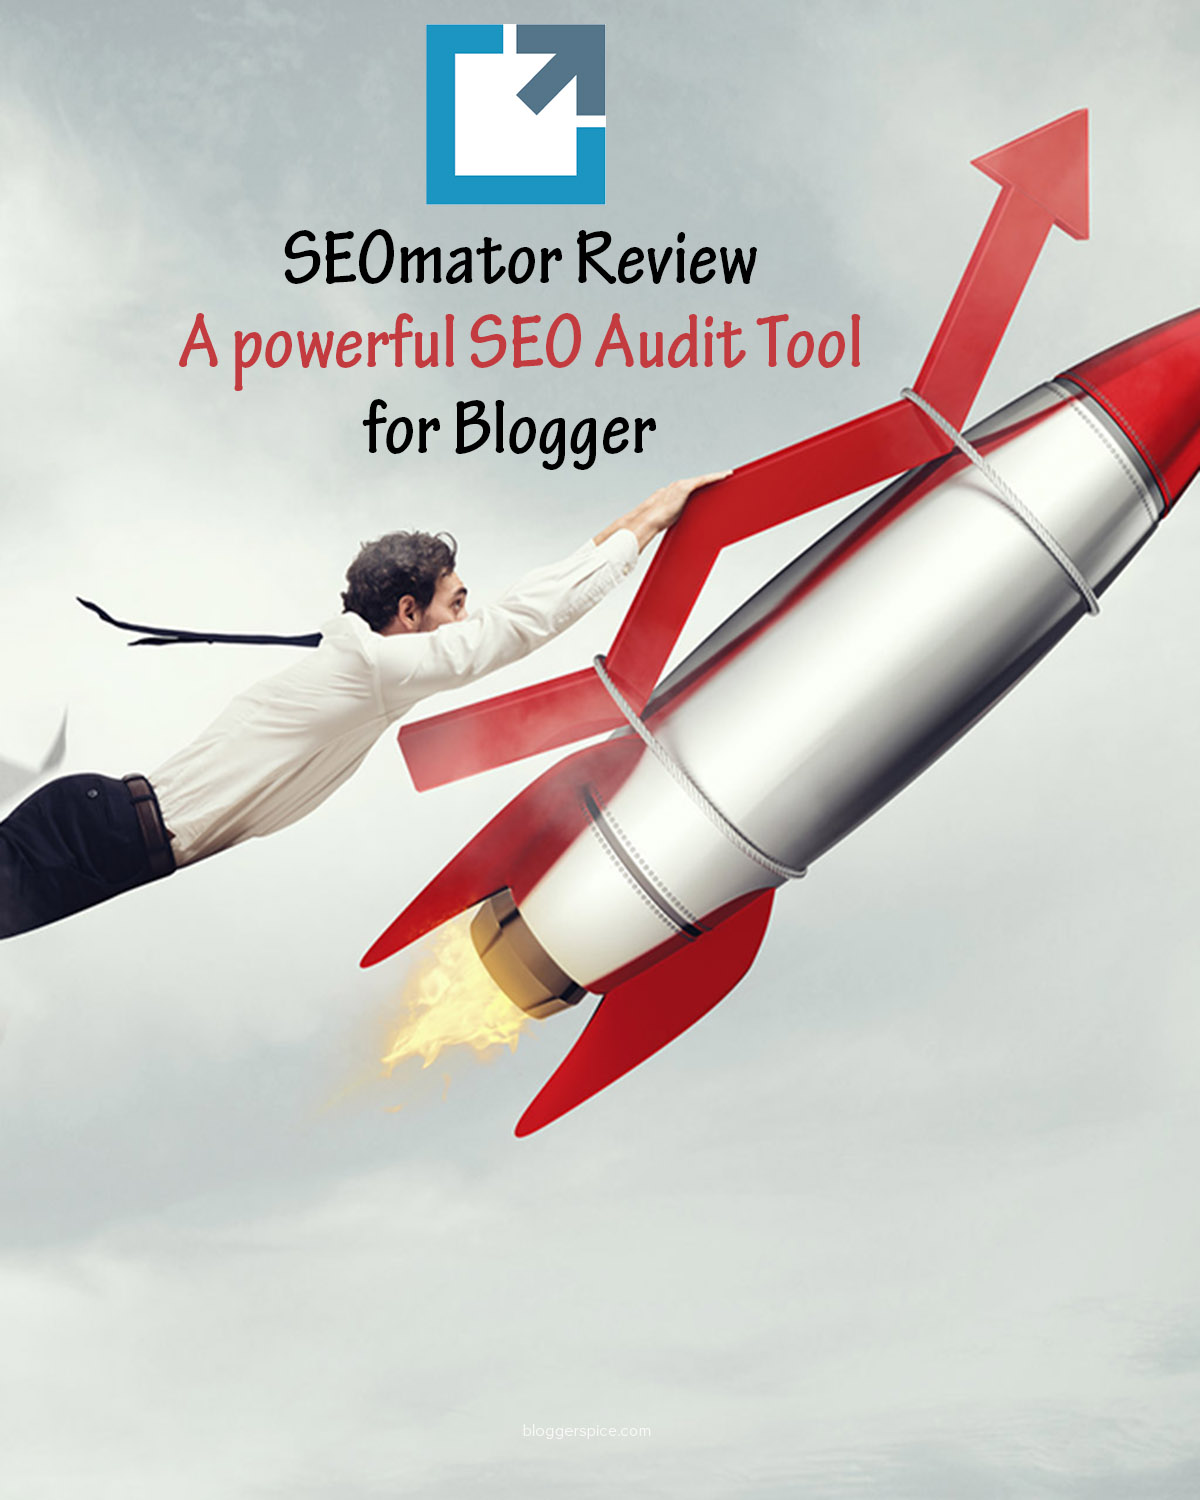 Seomator is Best powerful SEO Audit Tool for Blogger